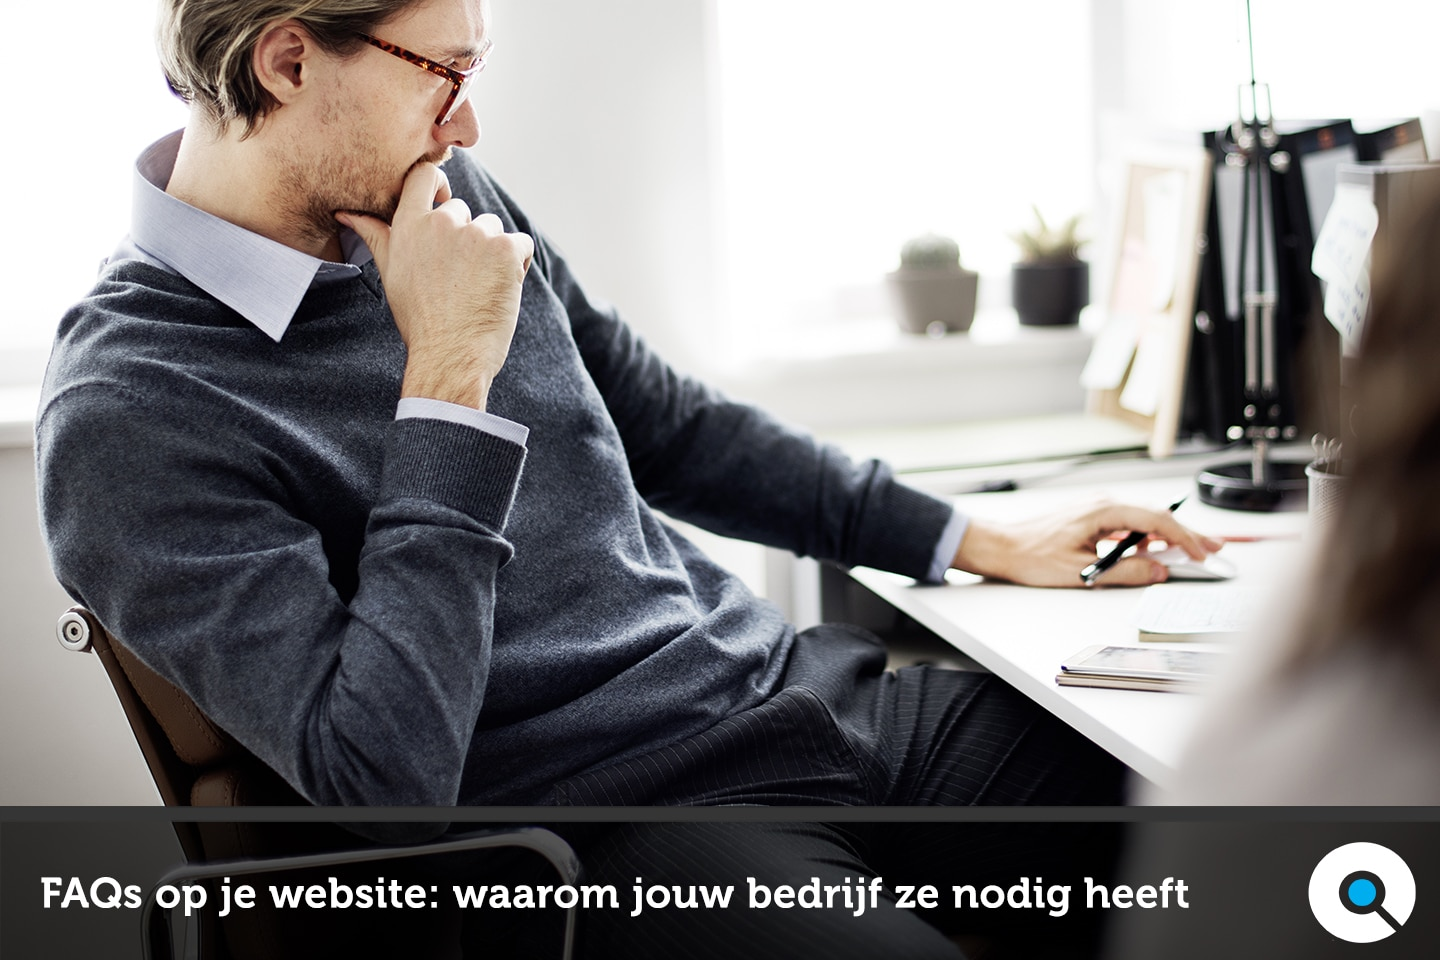 FAQs op je website